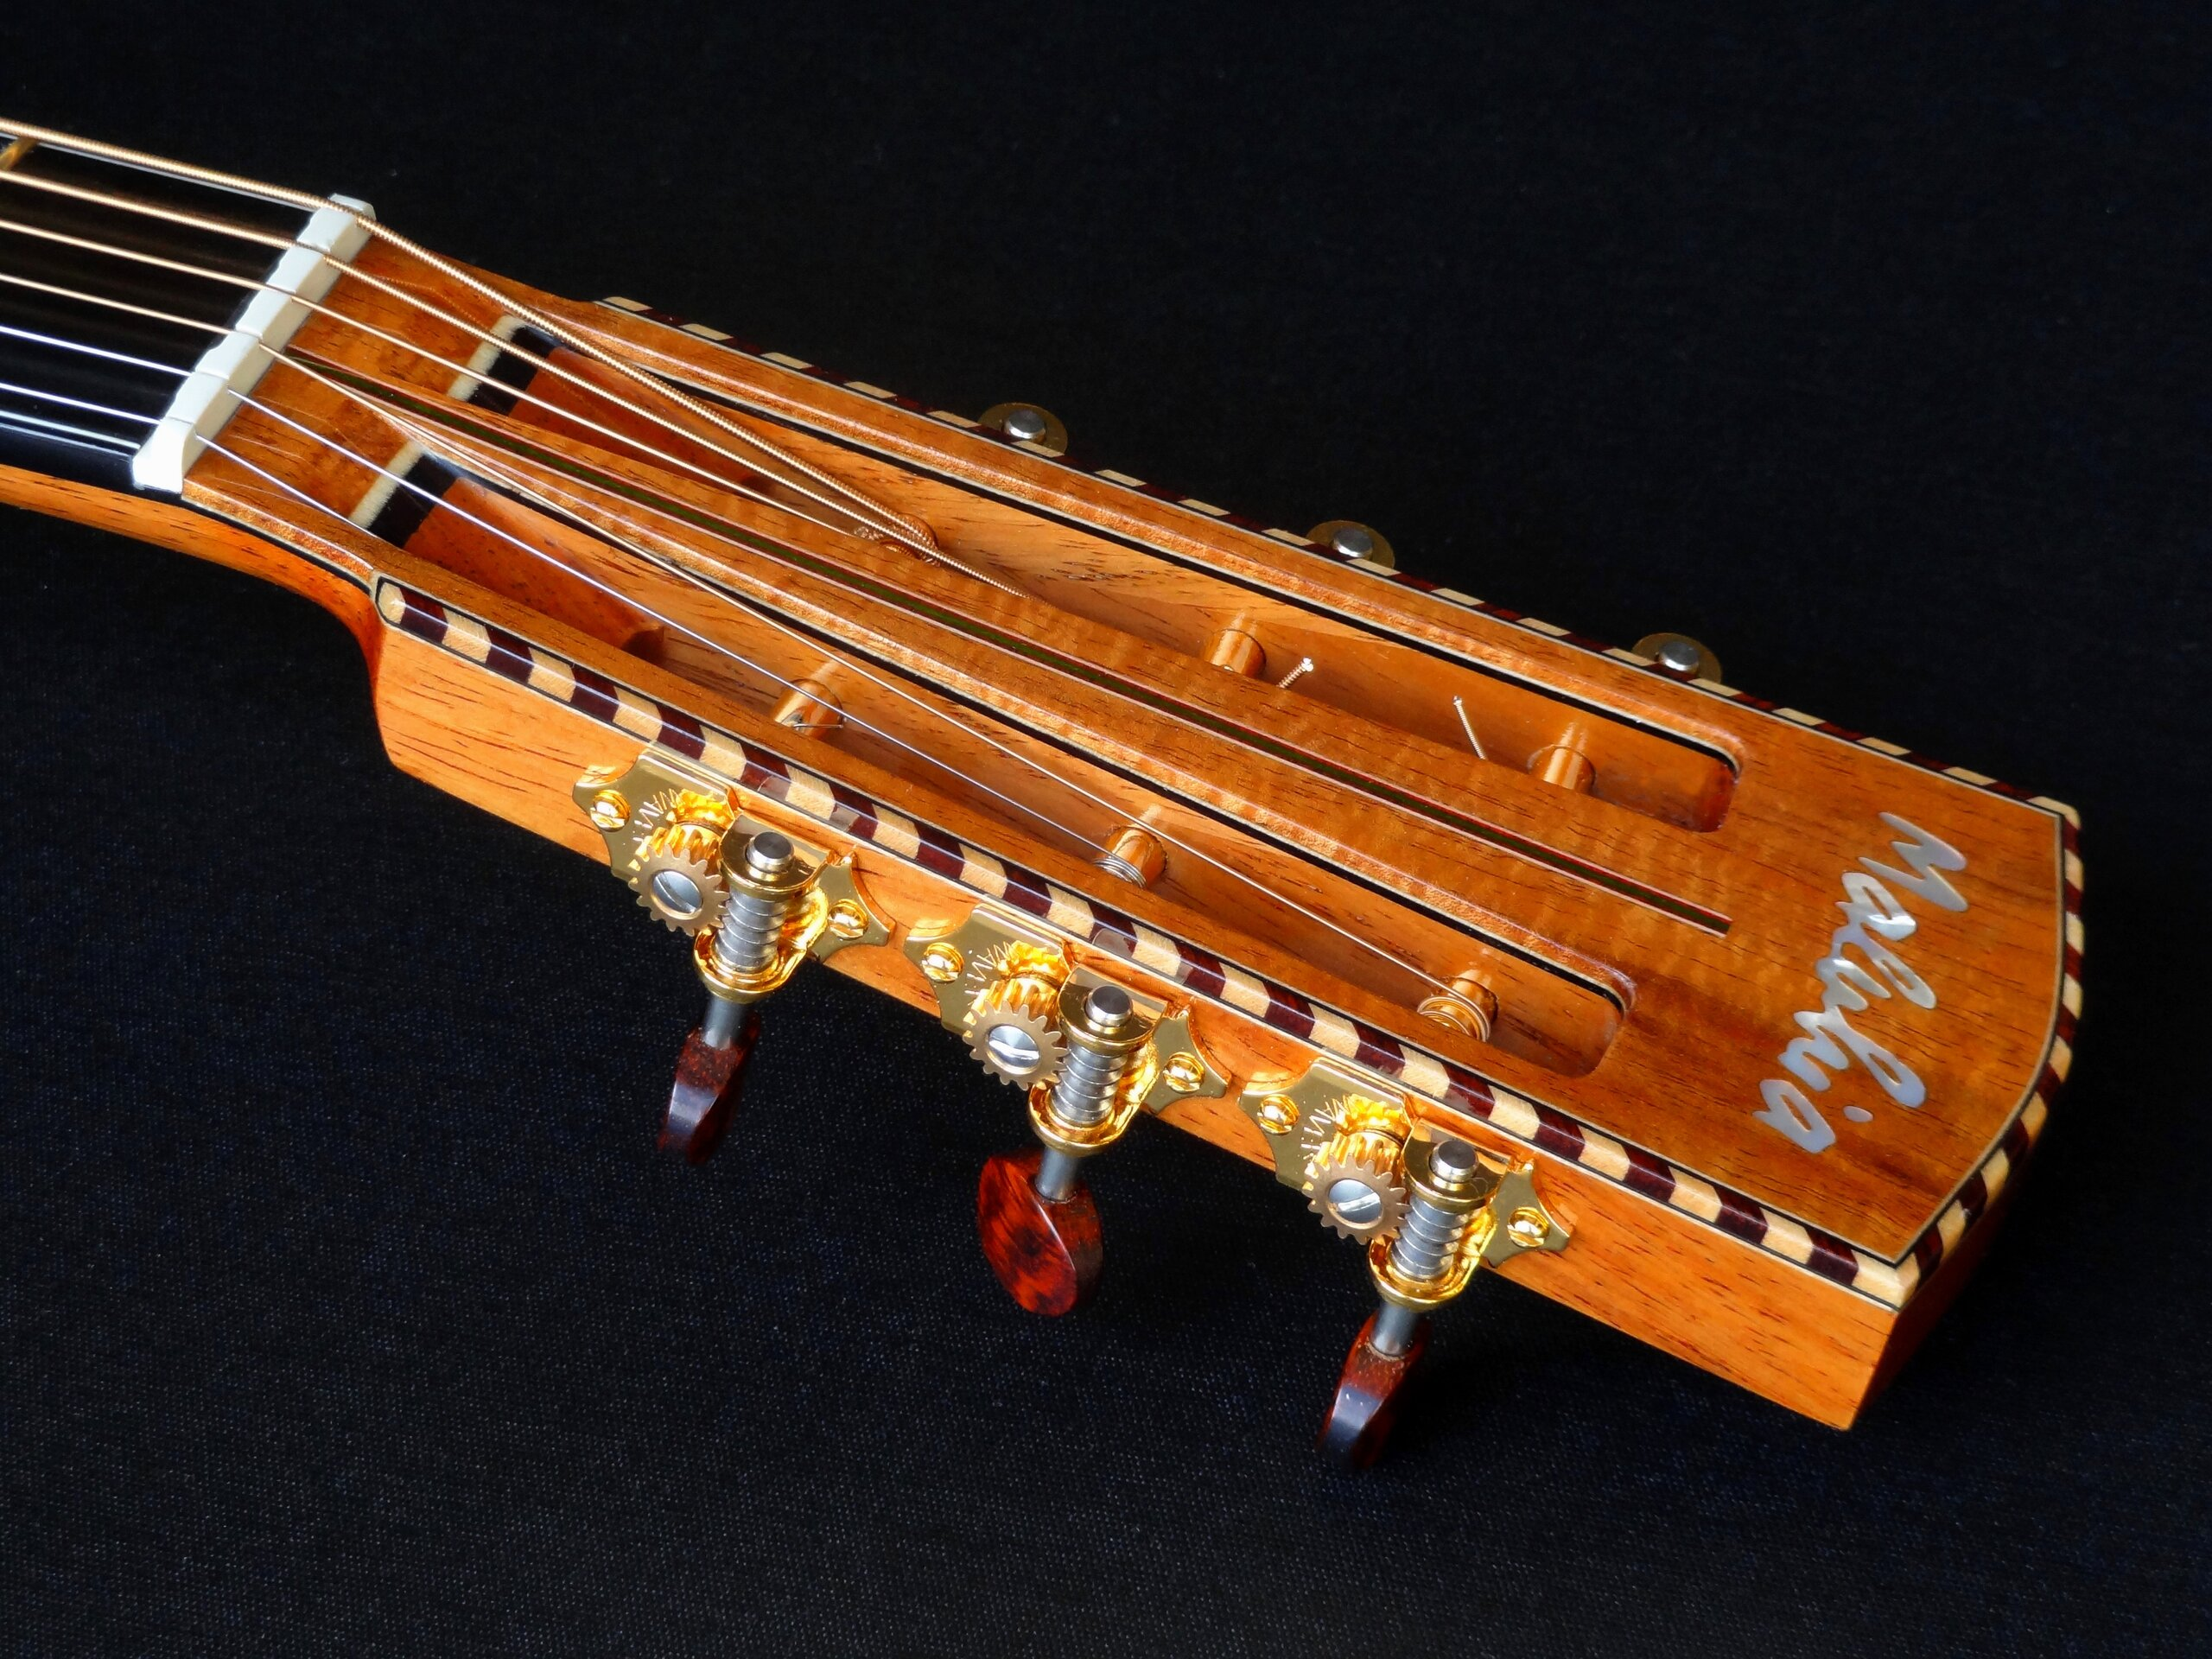 Slot headstock with rope binding, pearl inlay, Waverly tuners